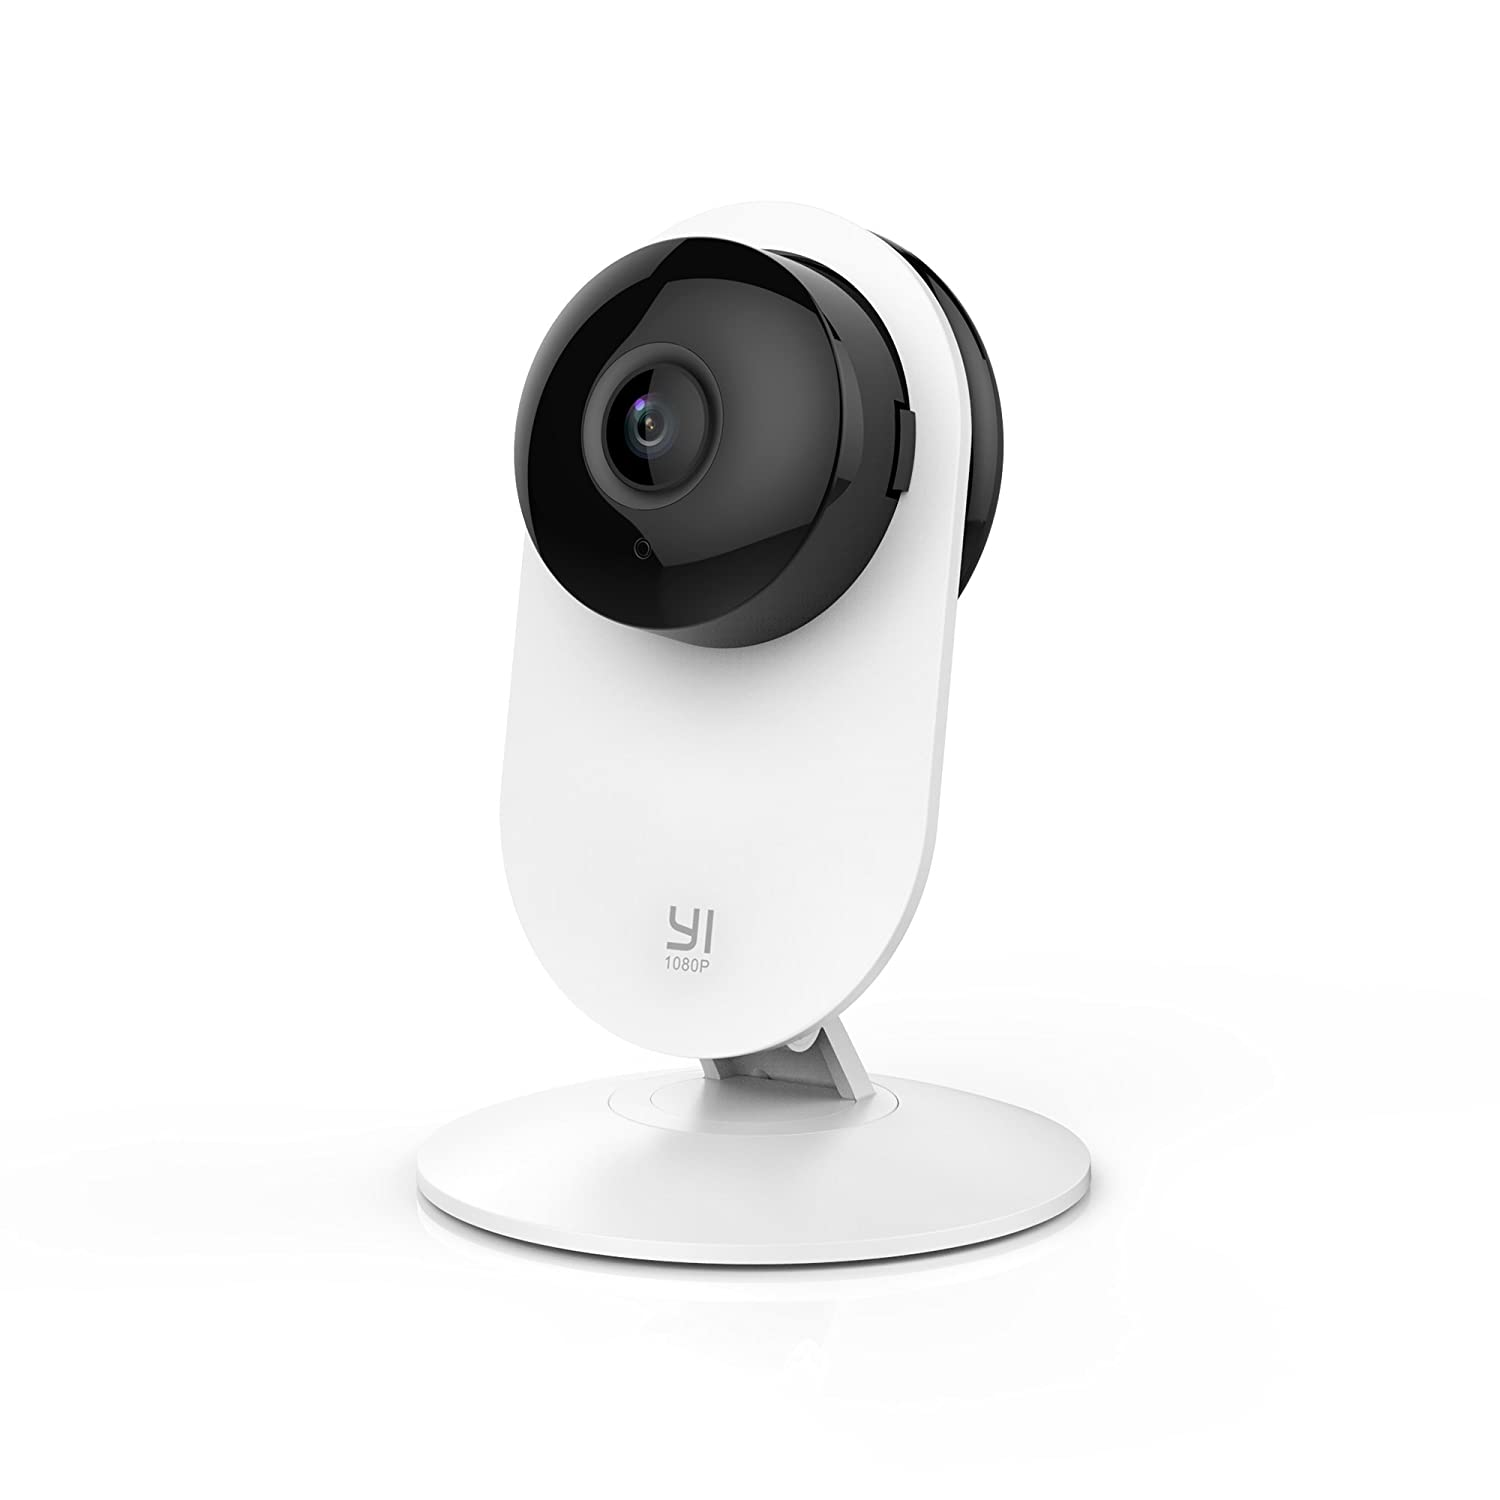 YI 1080p Home Camera, Indoor 2 4G IP Security Surveillance System with 24/7  Emergency Response, Night Vision for Home/Office/Baby/Nanny/Pet Monitor